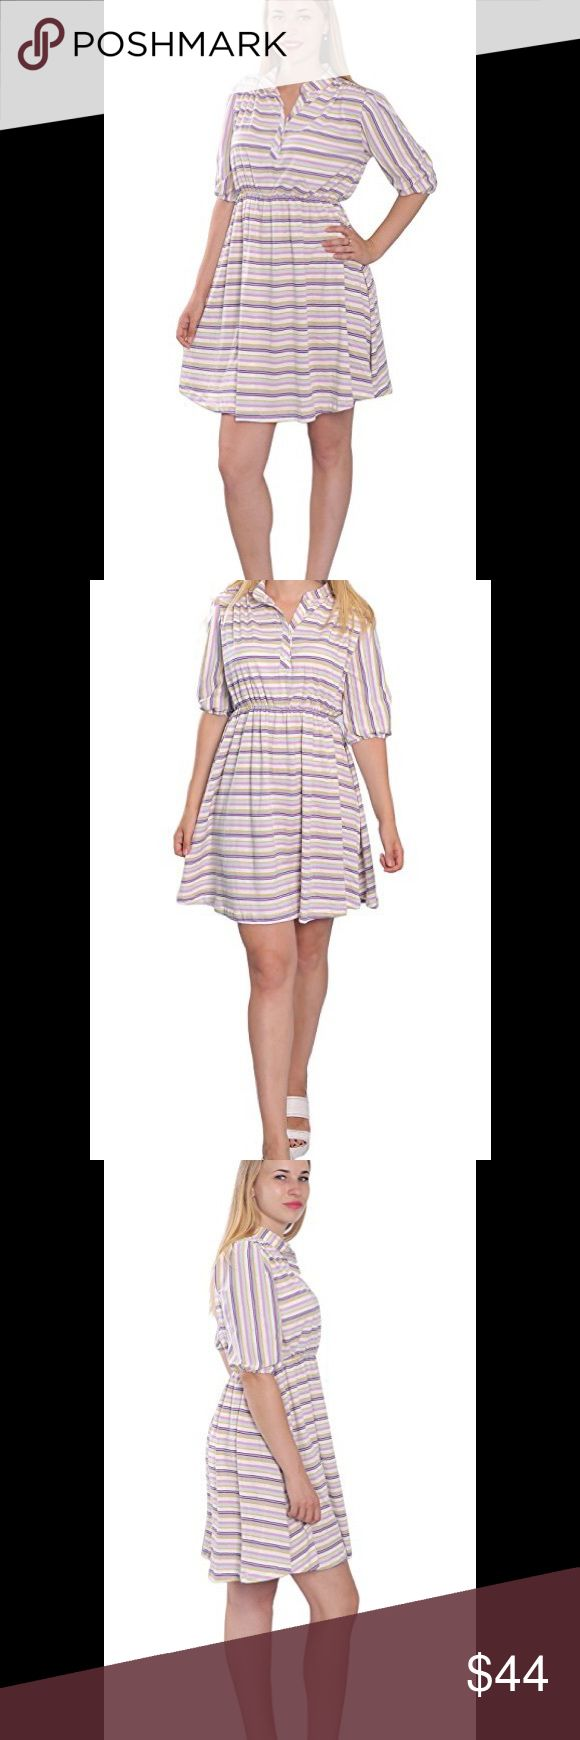 Striped short sleeve flared dress Brand new with tags. Medium weight, unstretchy, single jersey 100% cotton. Available sizes: 0, 2, 4, 6, 8, 10, 12, 14, 16, 18, 20, 22 Posh rules only, no trades, no PayPal, no low ball offers. Please and thank you. Serious buyers only. Dresses Mini